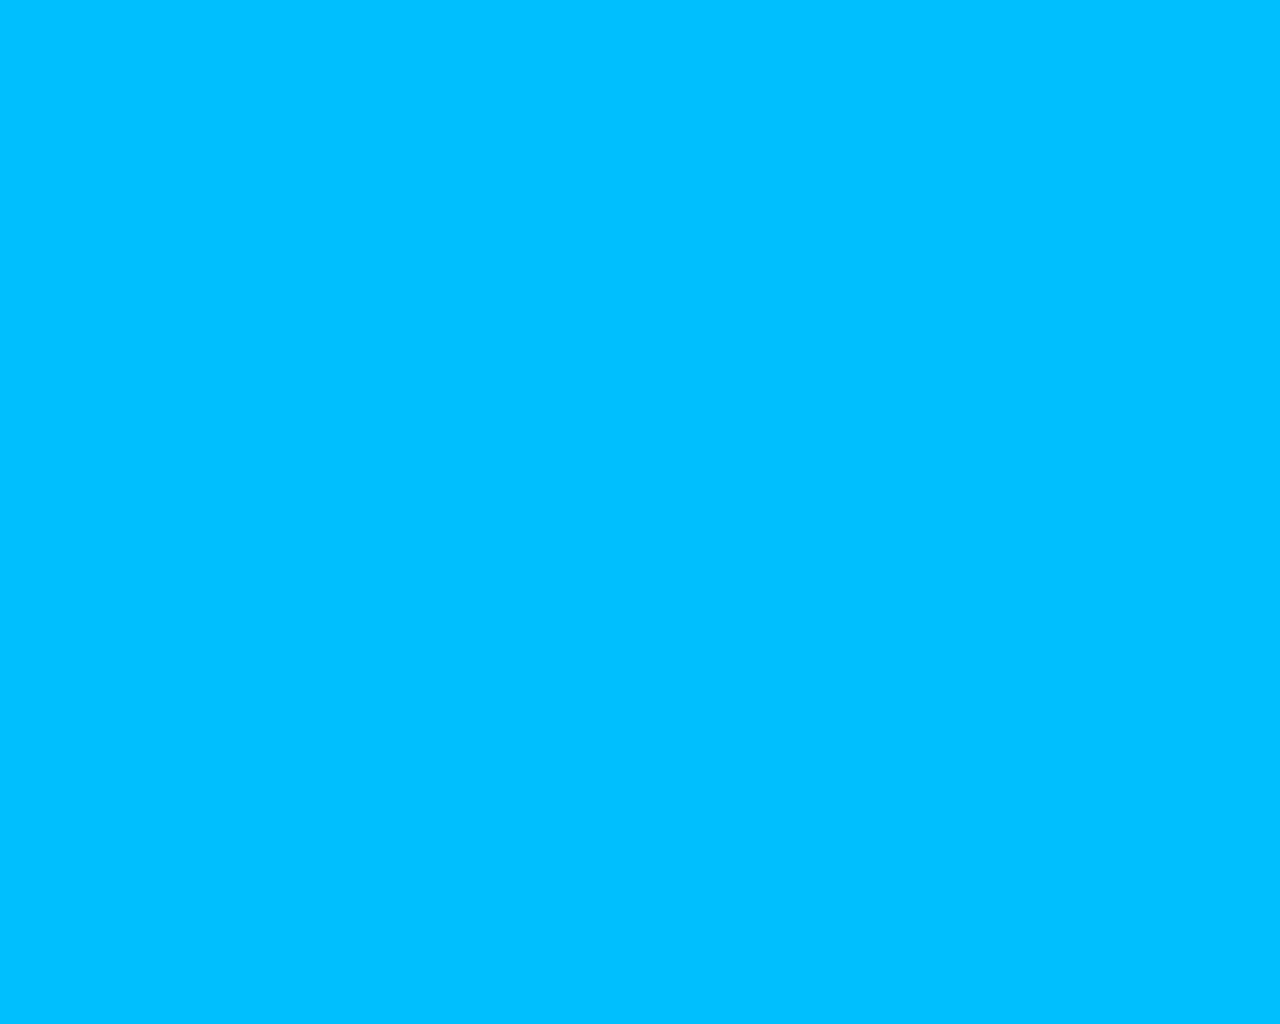 1280x1024 Deep Sky Blue Solid Color Background